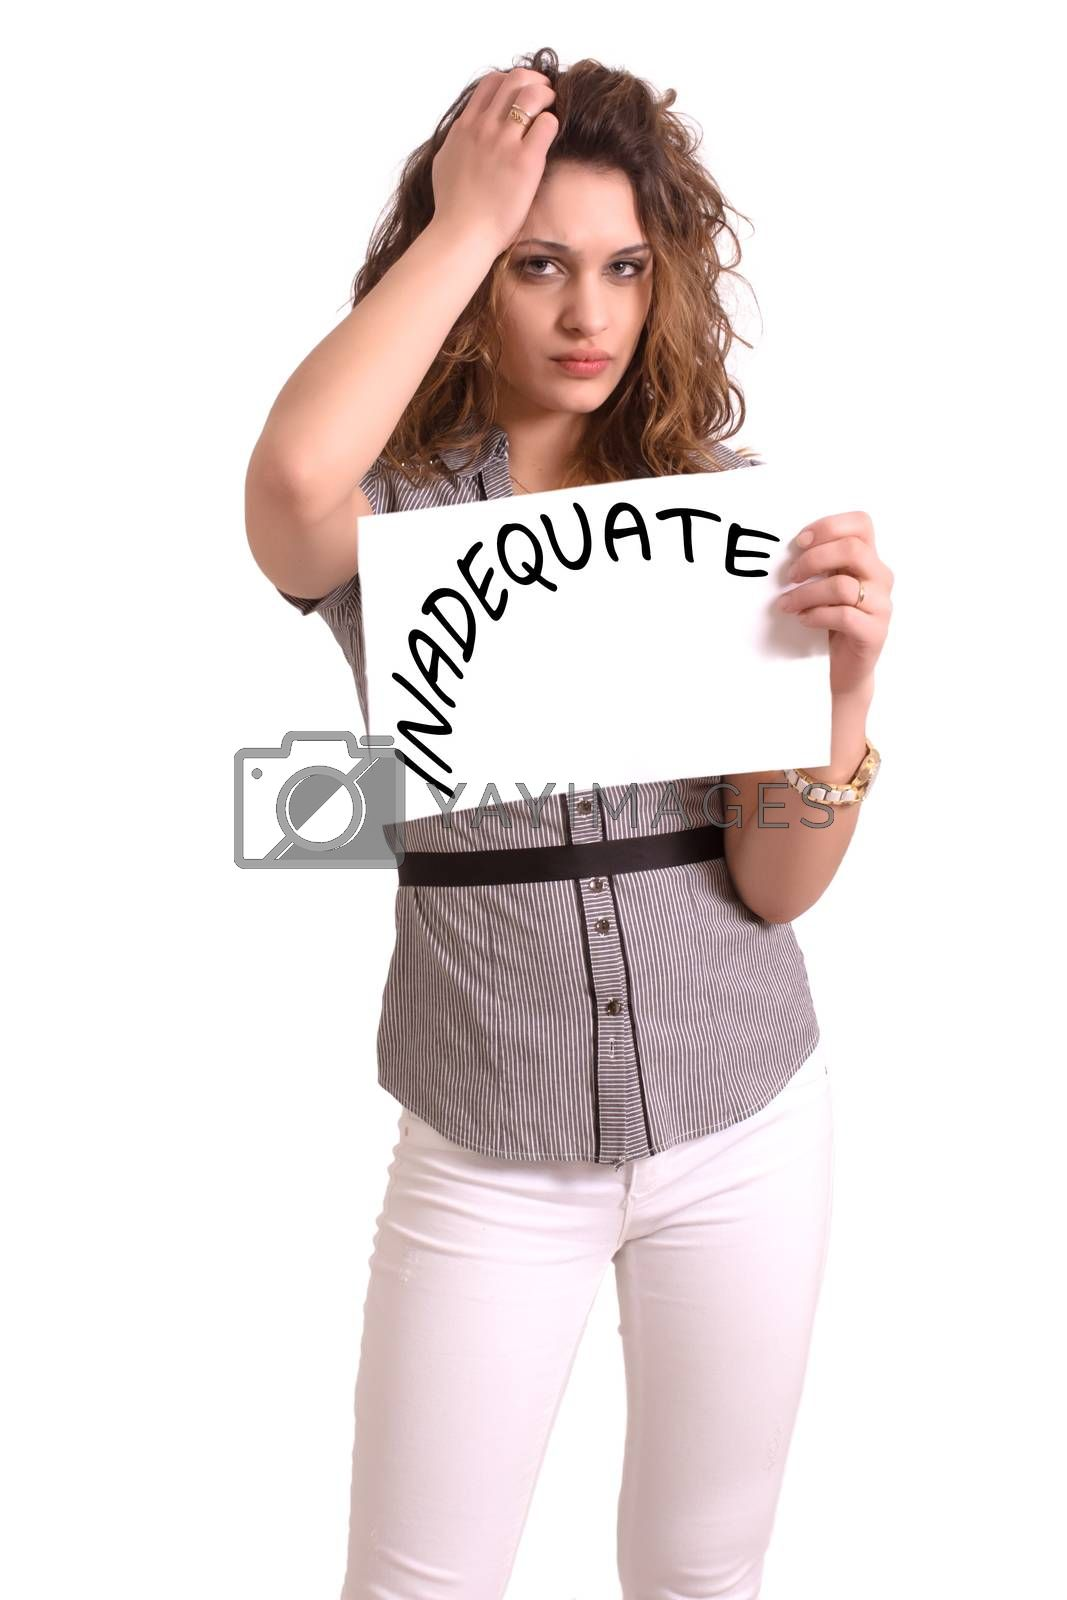 Royalty free image of uncomfortable woman holding paper with Inadequate text by vepar5